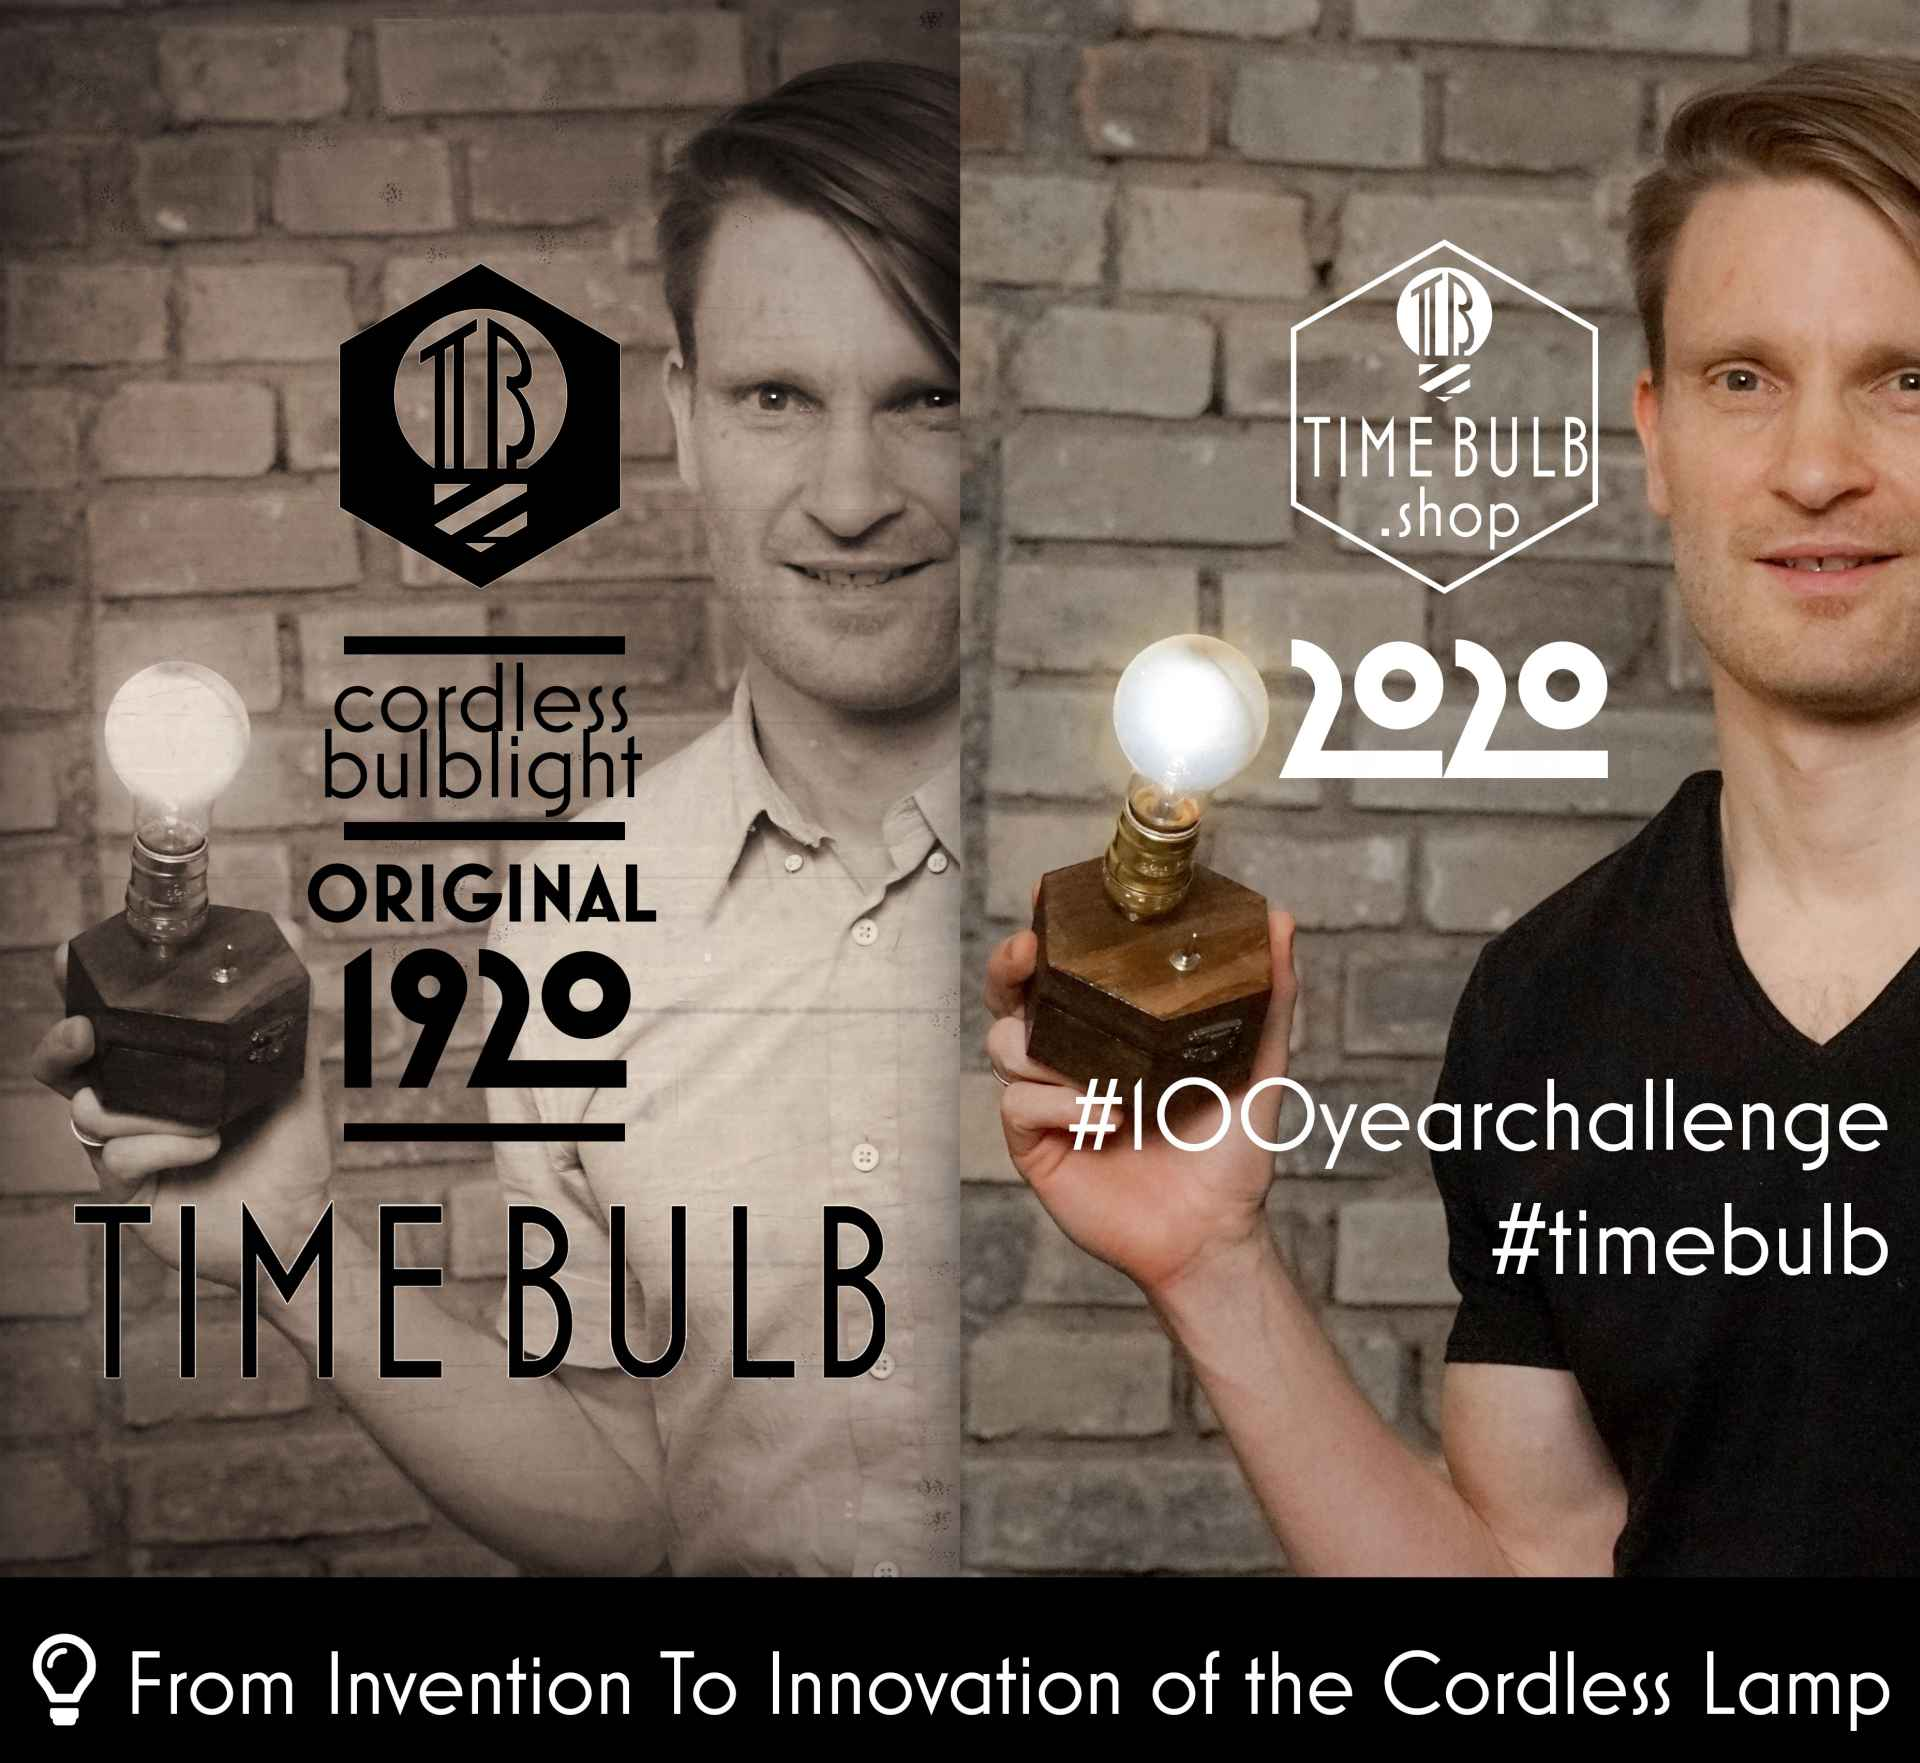 TTimeBulb wireless dinner table lamp #100yearchallenge #10yearchallenge 1920 2020 2021 #1stapril light cordless cablefree wedding event party decoration trends nikola tesla thomas edison heinrich göbel staminno chllotz candlelight from Invention to Innovation of the Cordless Lamp - inventor innovator age of industrialization era Made In Germany Basis Frankfurt laboratory #basisfrankfurt #cordlesslamp #wirelesslamp #edisonbulb #edisonlamp #nikolatesla #thomasedison #staminnochllotz Edison Bulb #tilmannschlootz Tilmann Schlootz brand ambassador influencer #1stapril #1stofapril #steampunklamp #steampunkstyle #steampunktendencies #steampunk #vintagelamp #madeinfrankfurt #madeingermany #twenties #roaringtwenties #goldentwenties #twentiesparty #twentiespartytheme golden roaring twenties wedding party theme event motto styling trends 2020 2021